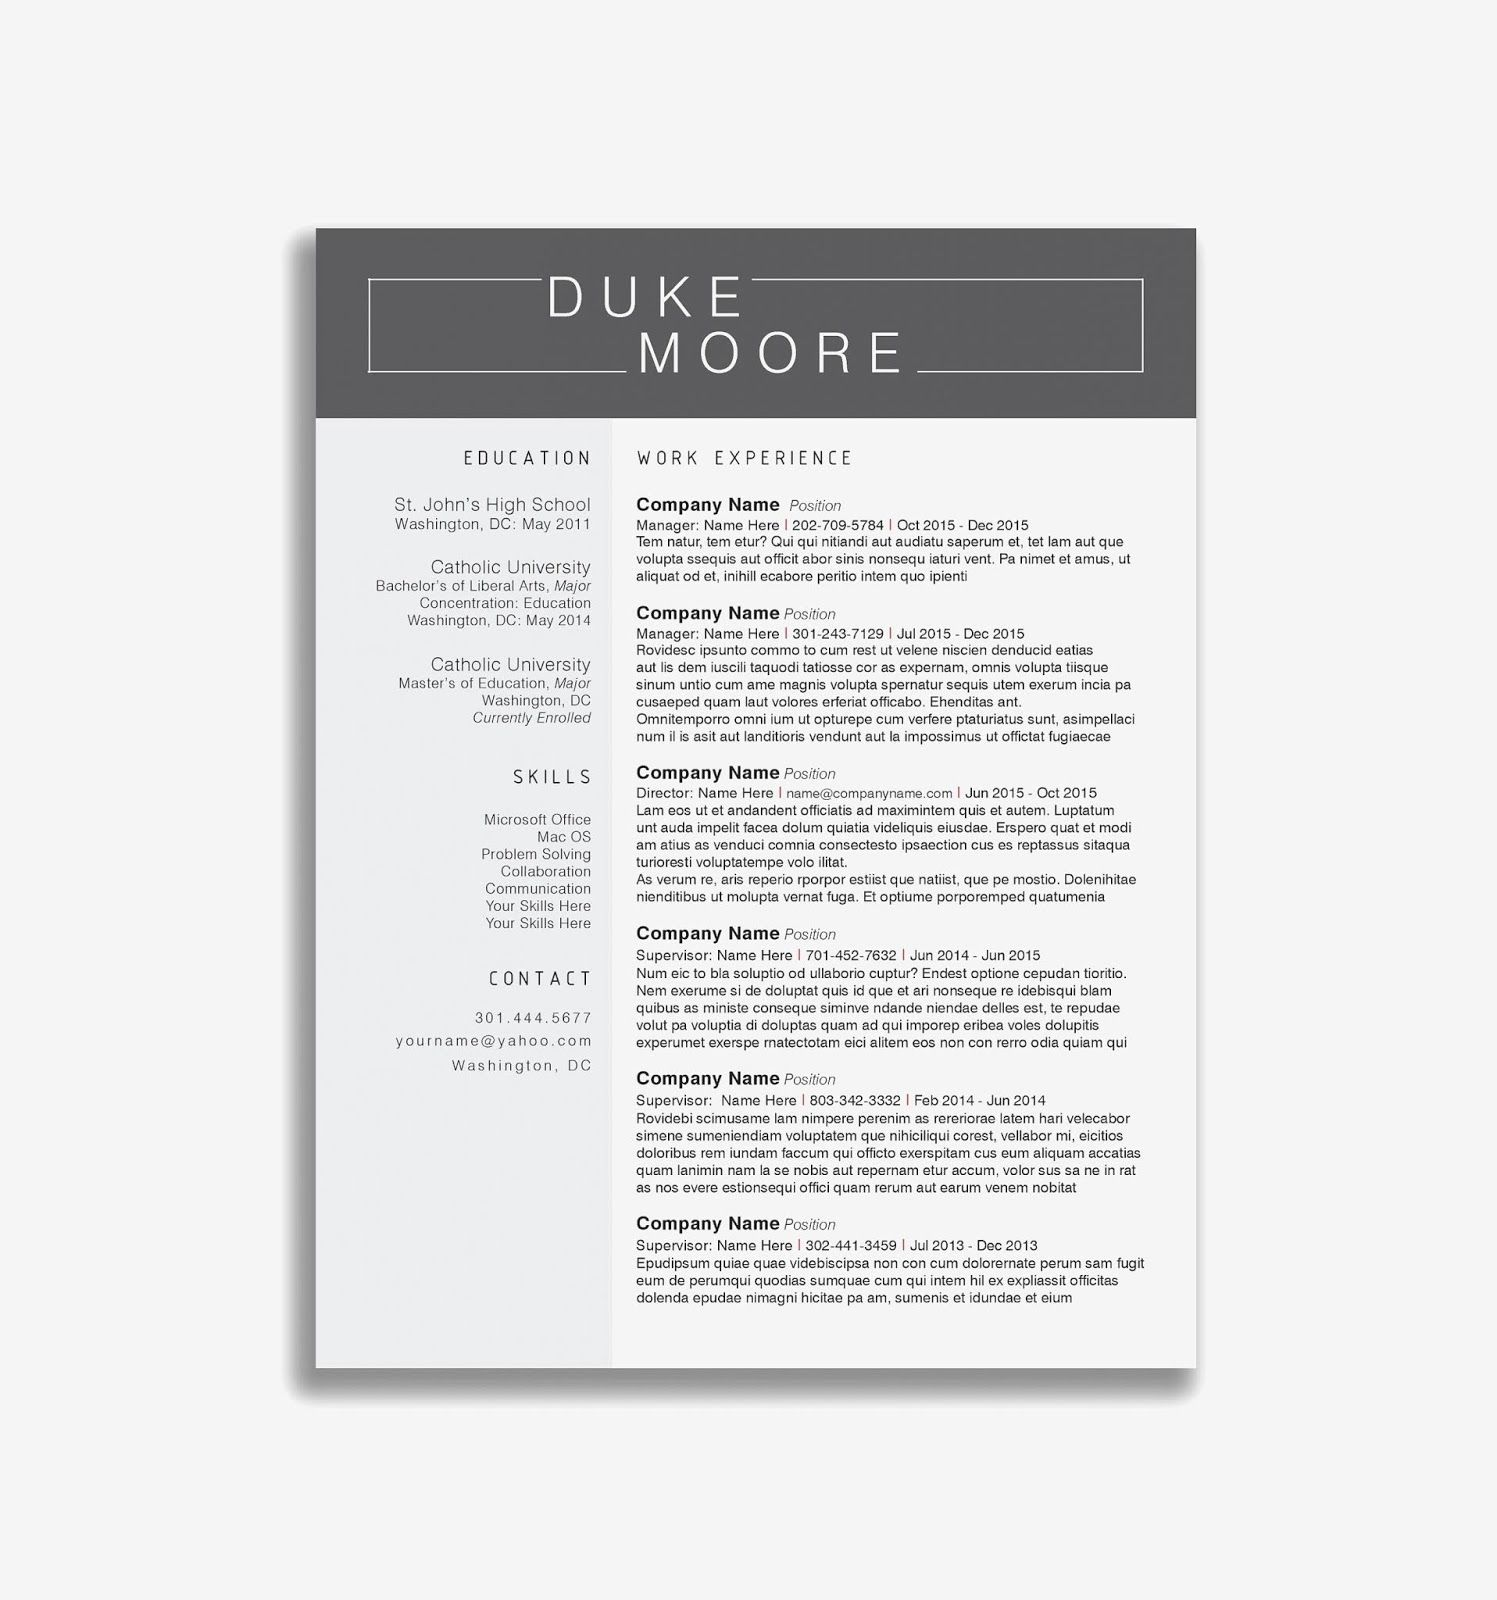 Retail Manager Cover Letter Examples Free, Hece, Finans